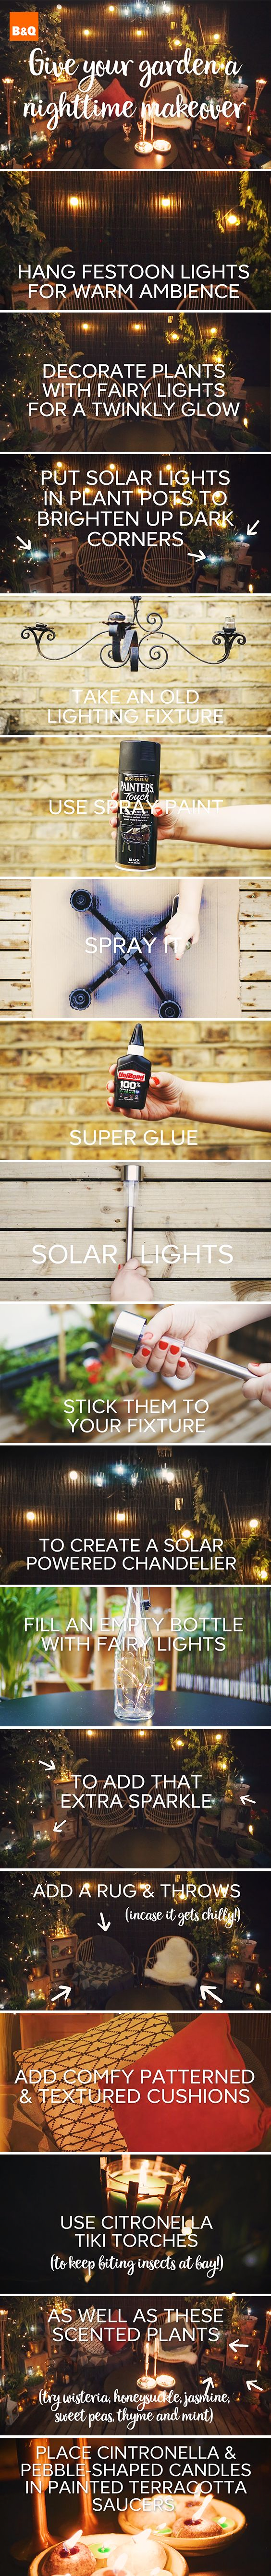 Making over your balcony or small garden space gives you an extra room to entertain during the summer. Use festoon lights, hurricane lanterns, balcony plants and succulents to add some boho glam to your balcony.